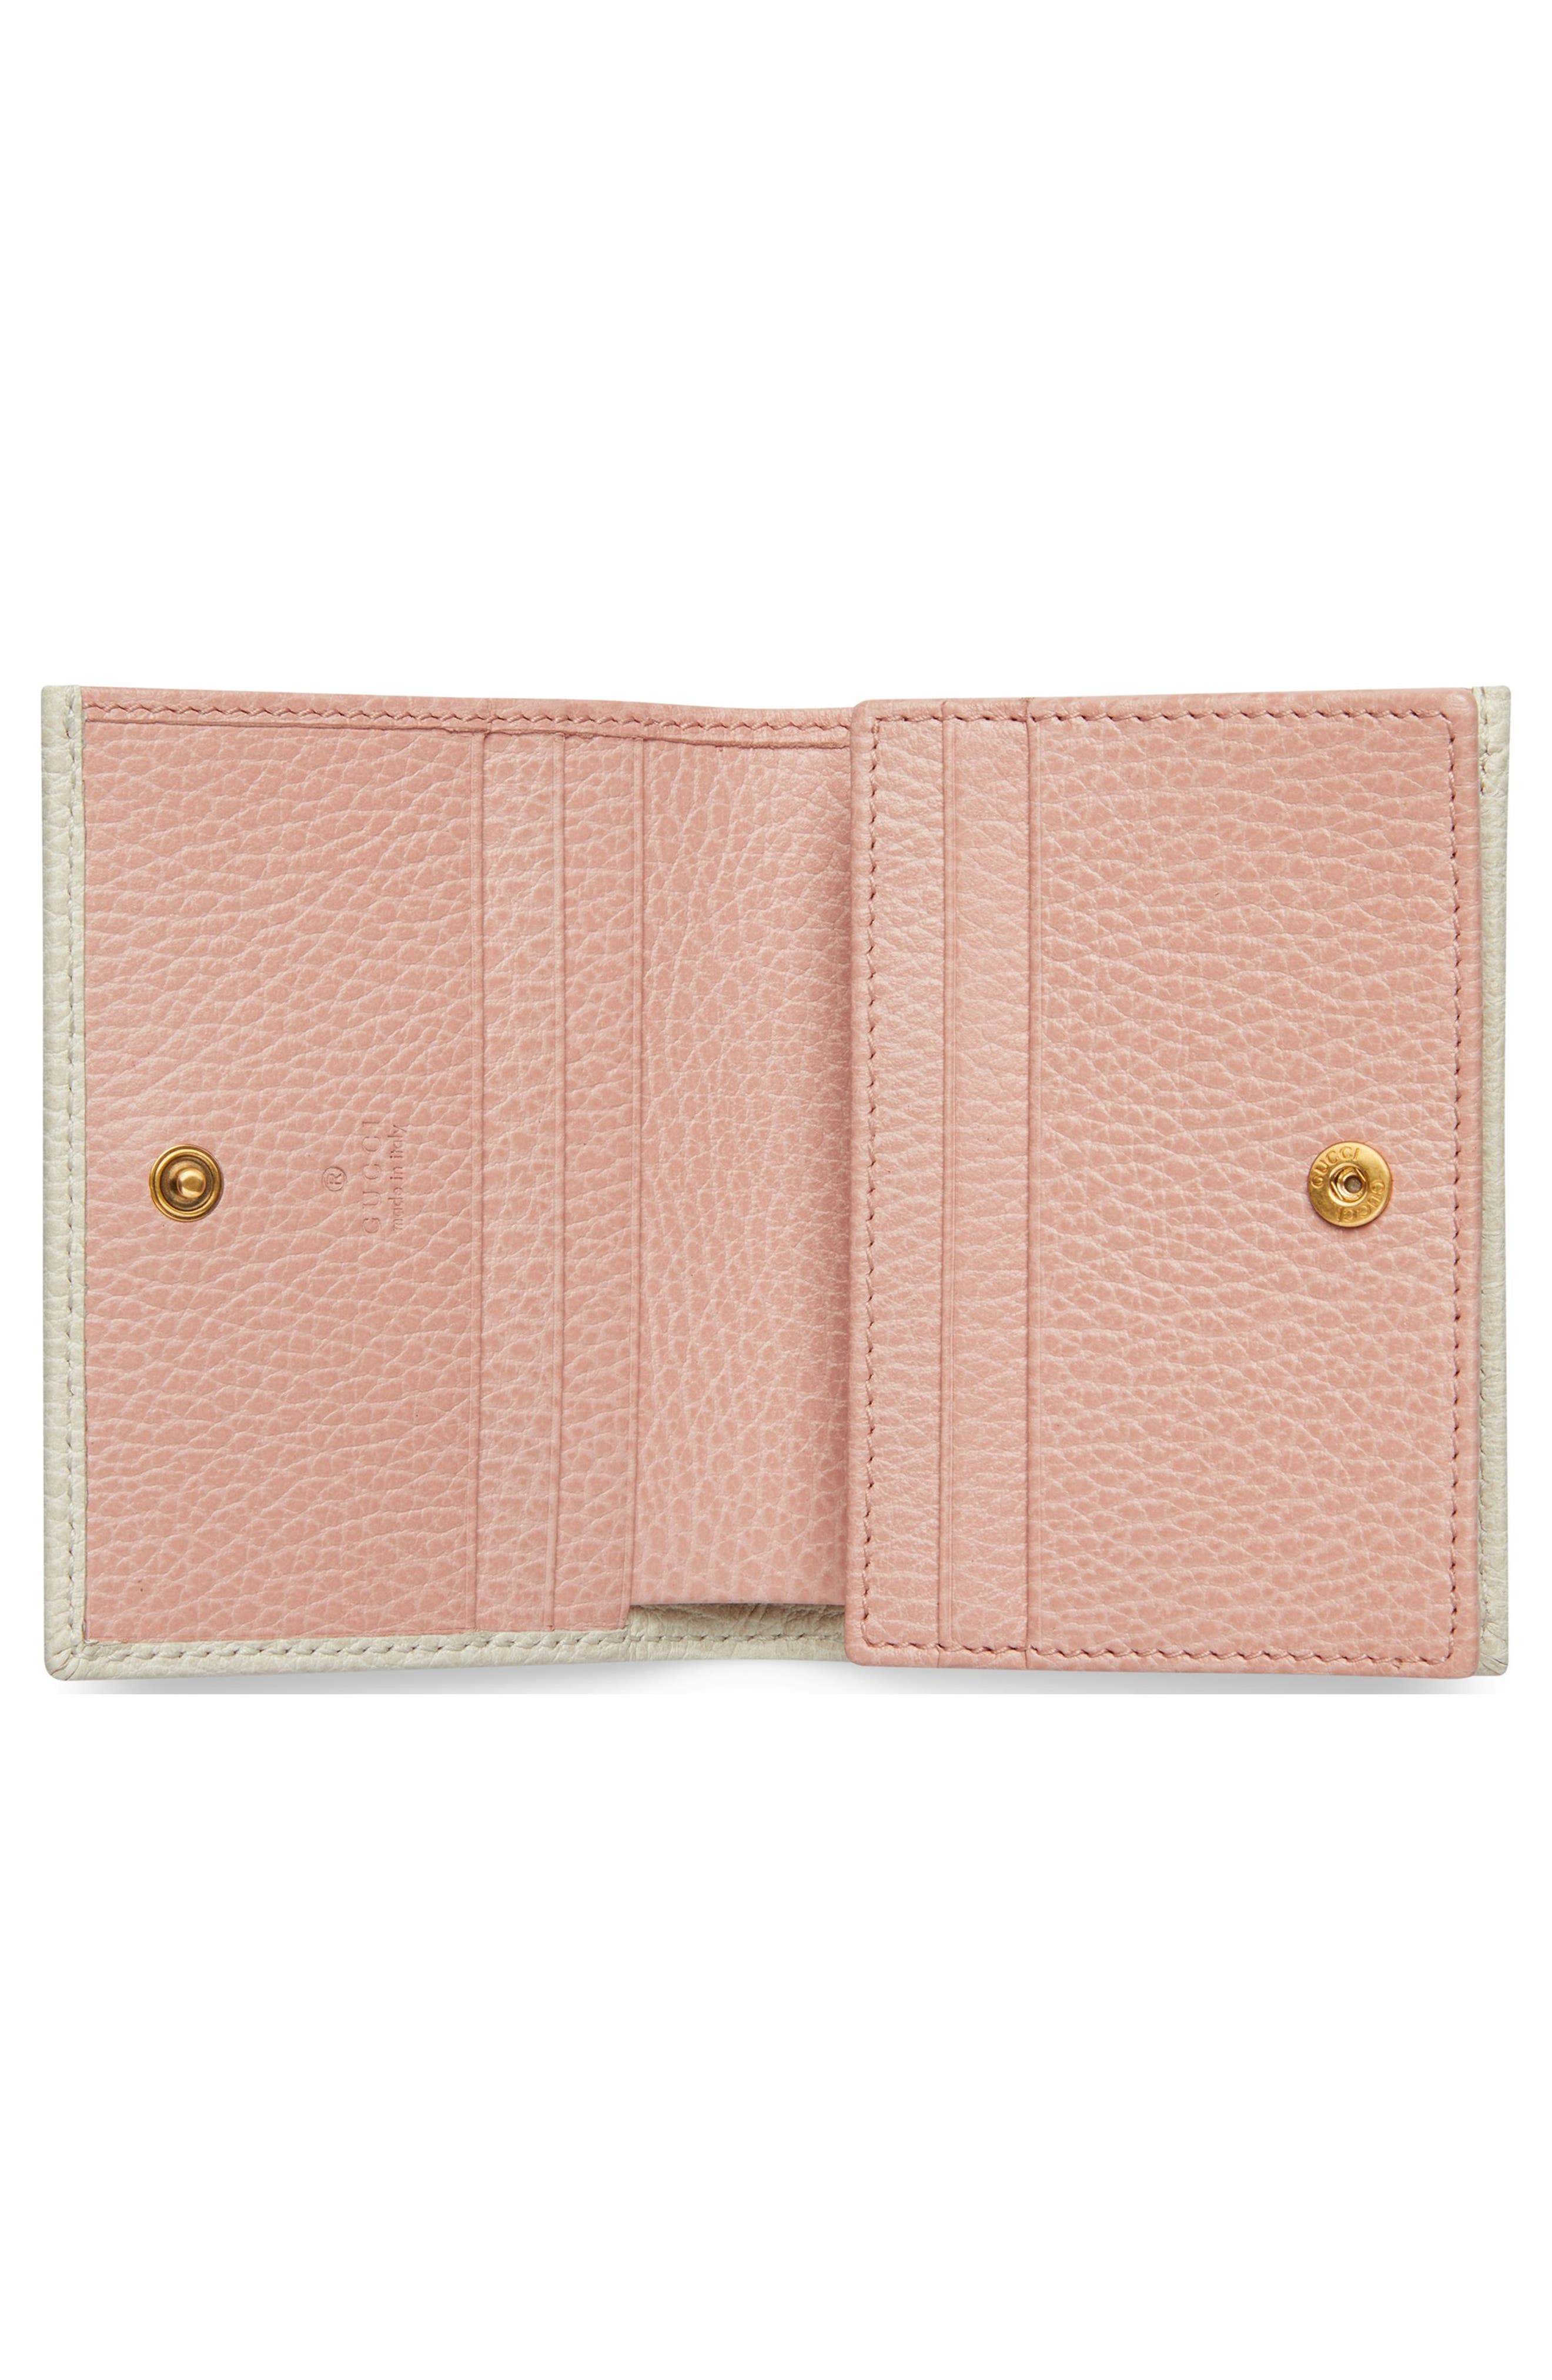 Fiocchino Leather Card Case,                             Alternate thumbnail 3, color,                             Mystic White/ Pink/ Crystal